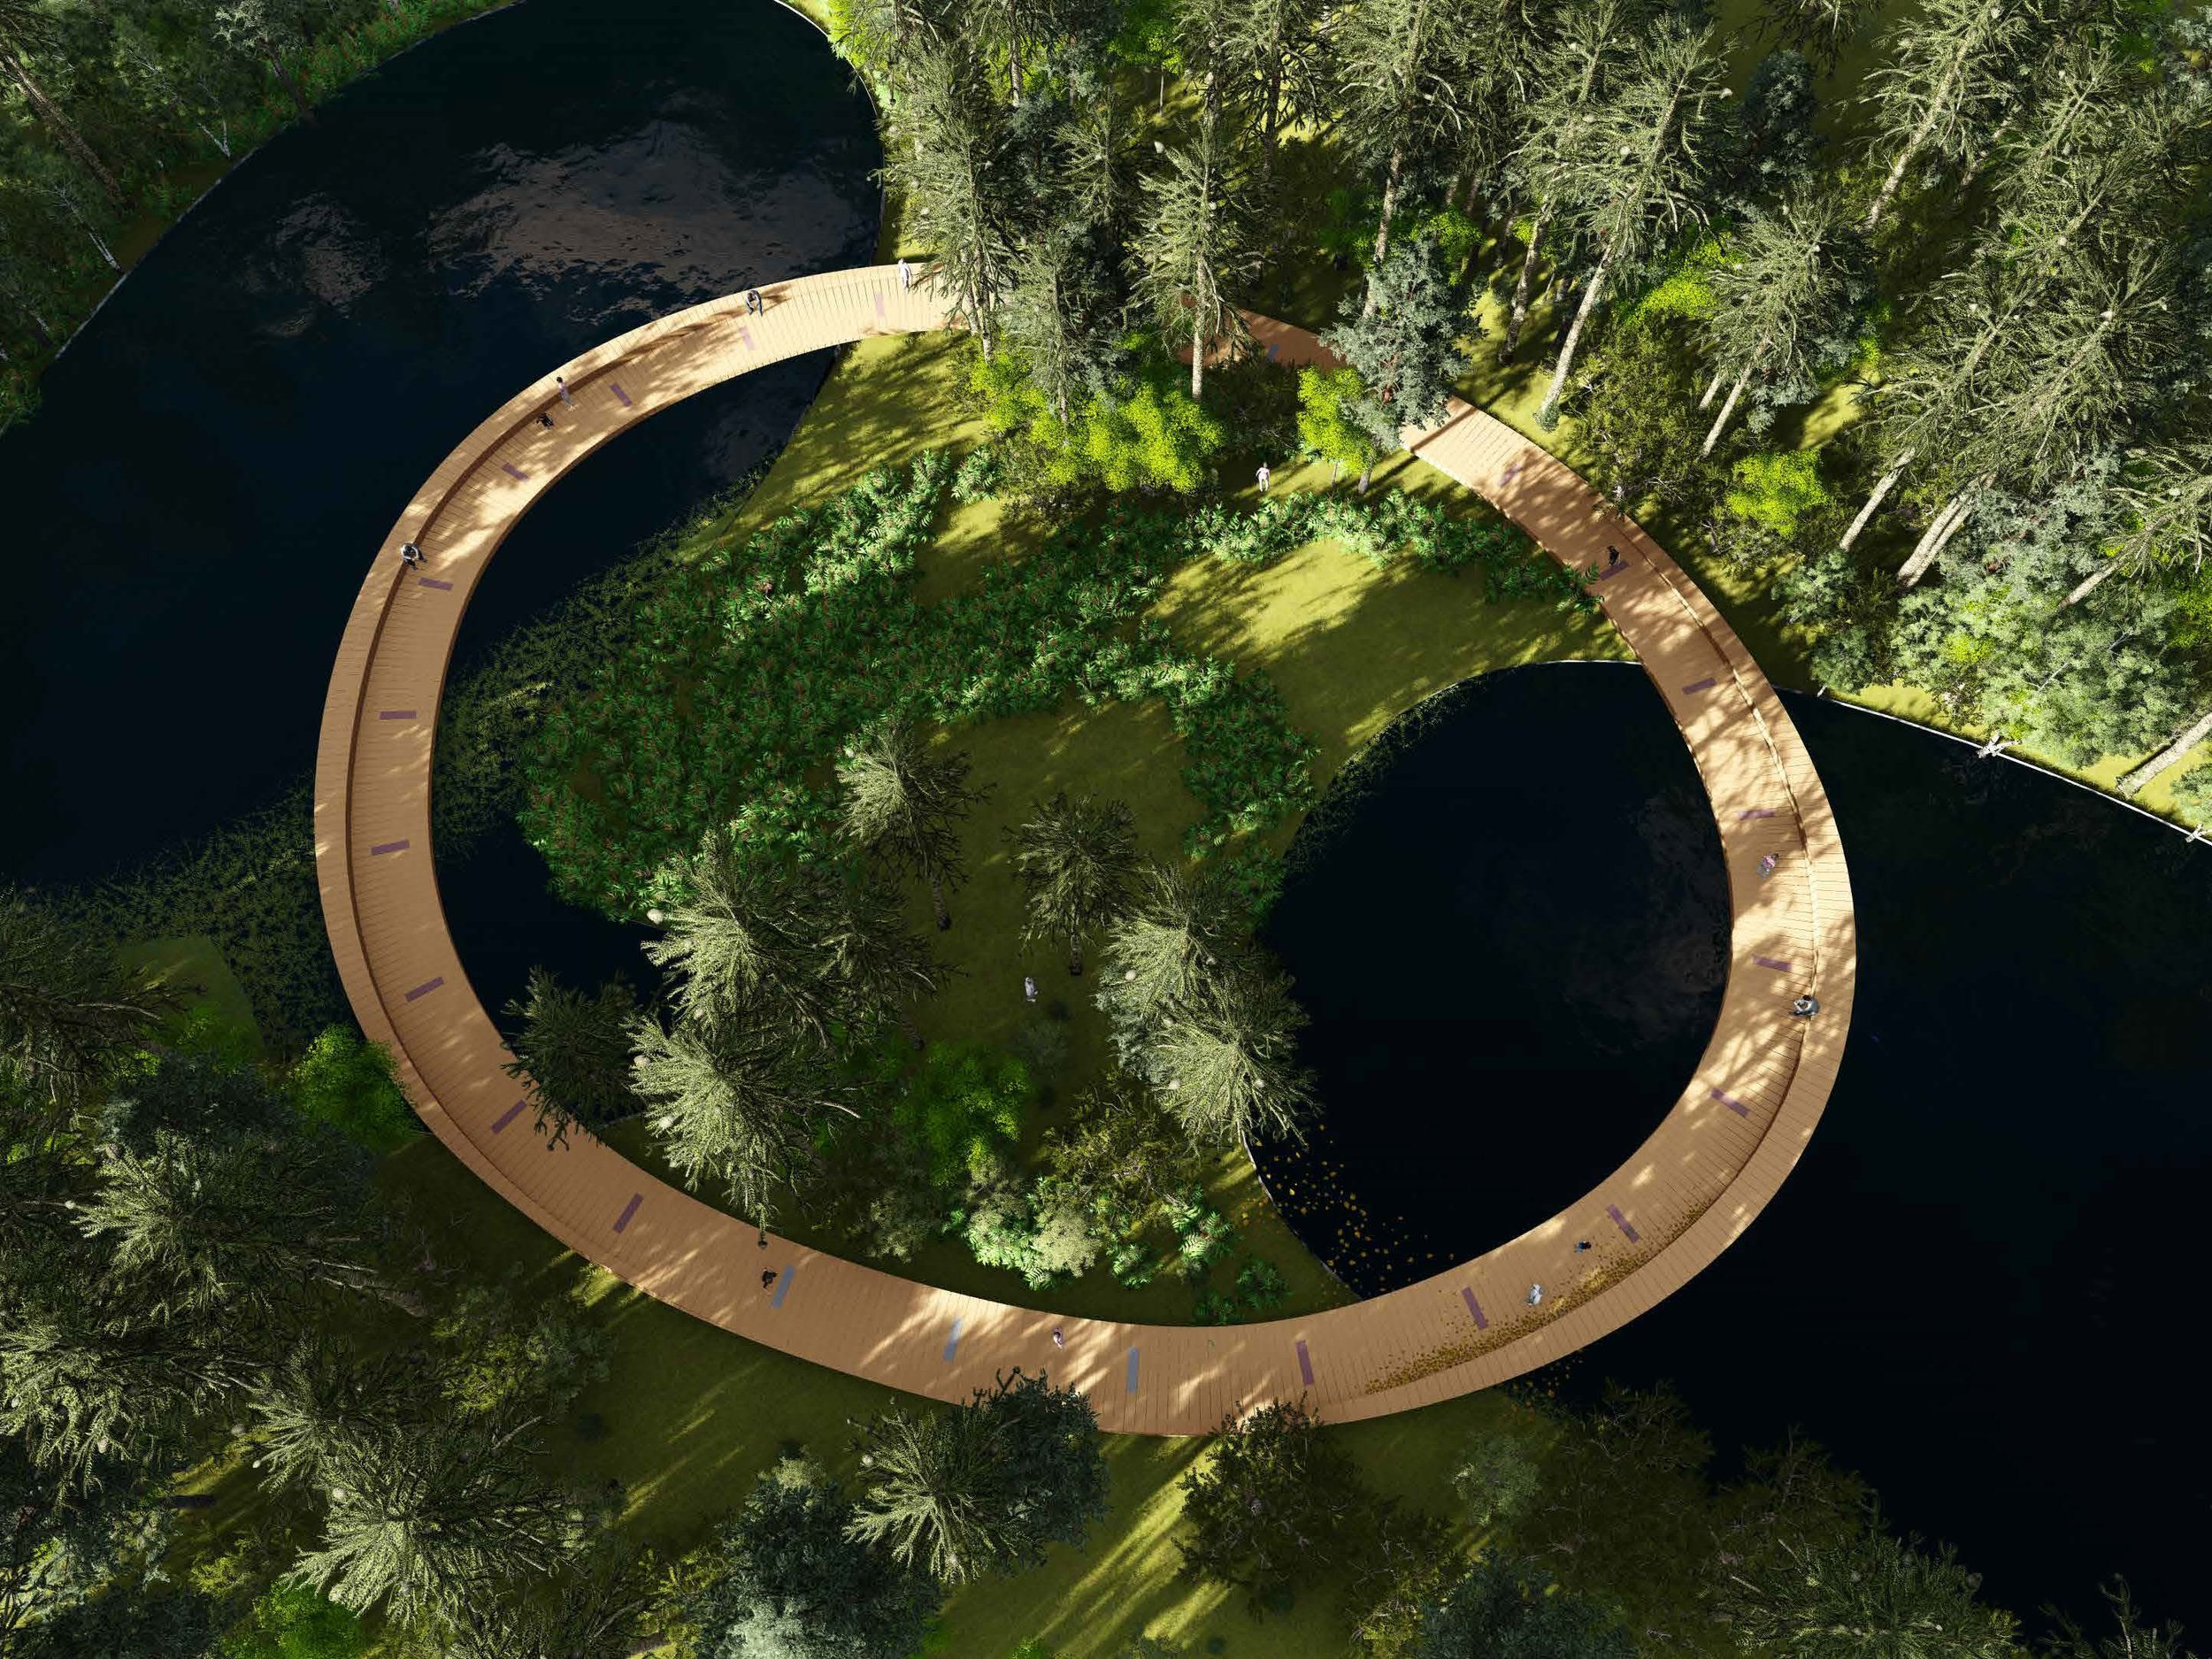 - For Sandy Hook Permanent Memorial, Balmori proposes a space for meditation, healing and contemplation. Not a sculptural object nor a fixed memorial. But a landscape that is continuously changing as all things in nature do.Balmori's design is one of thirteen selected out for 189 designs.